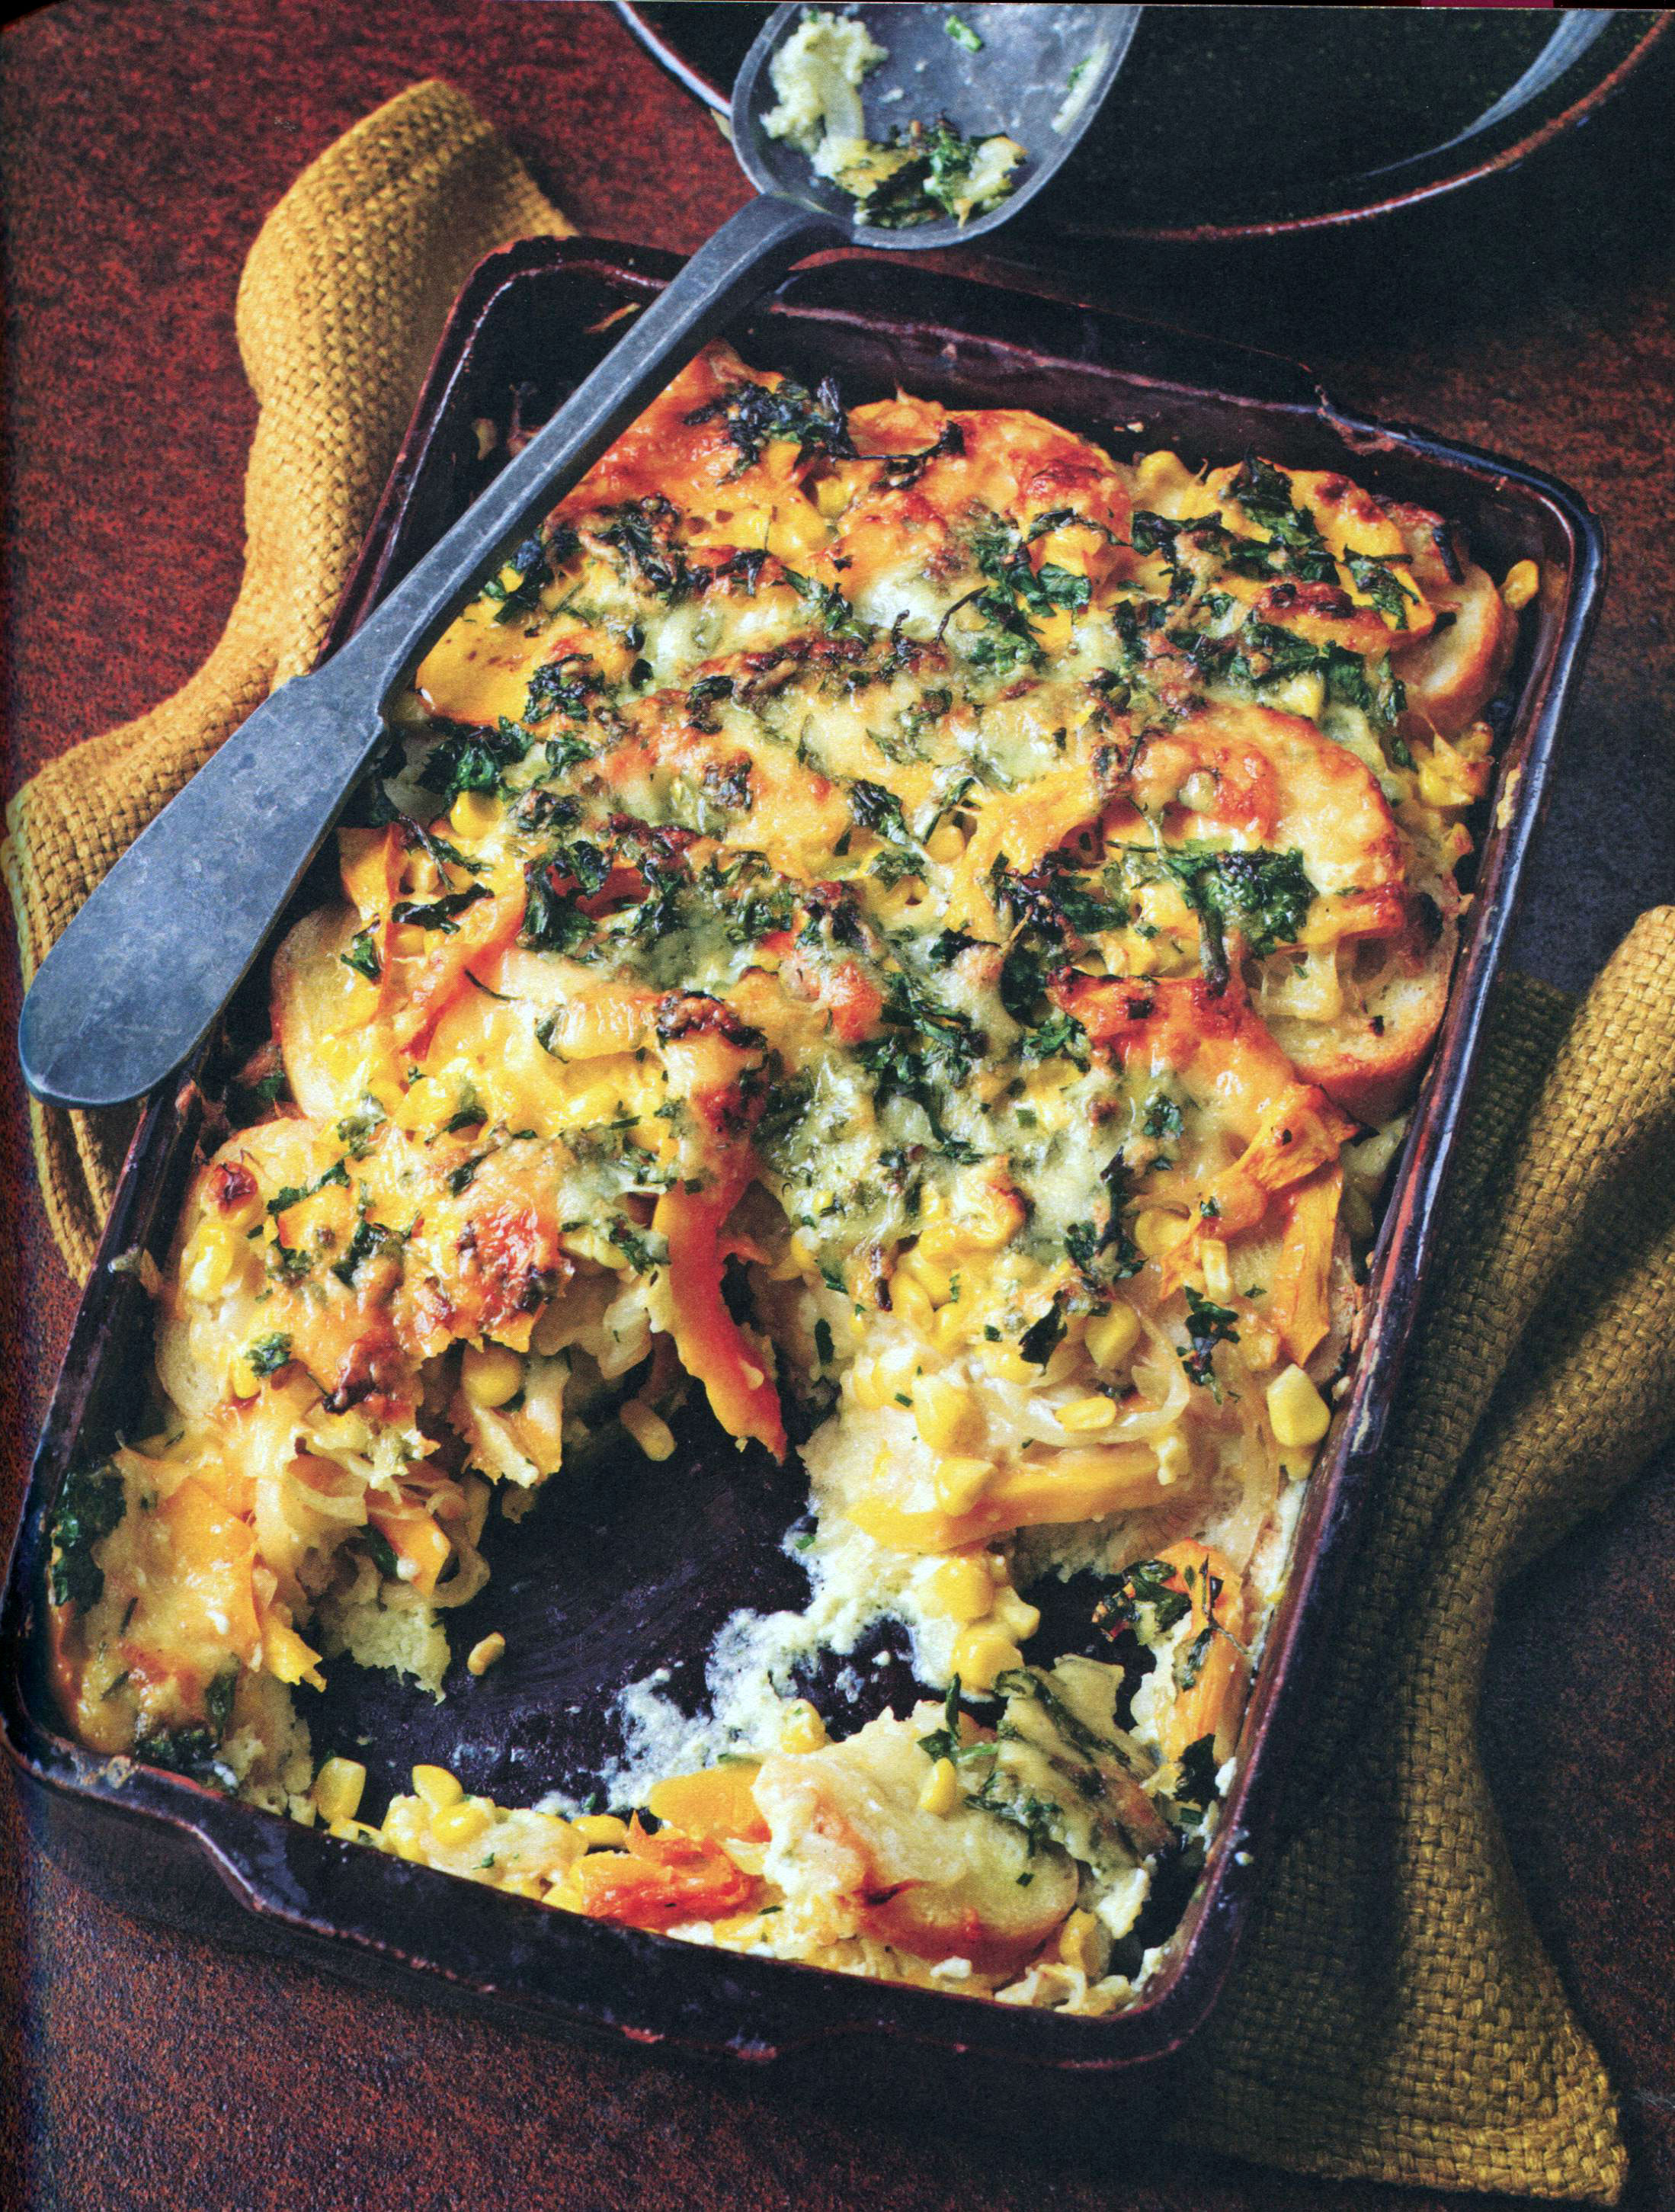 TBT Recipe: Butternut Squash, Corn and Bread Bake with Cheese and Chives